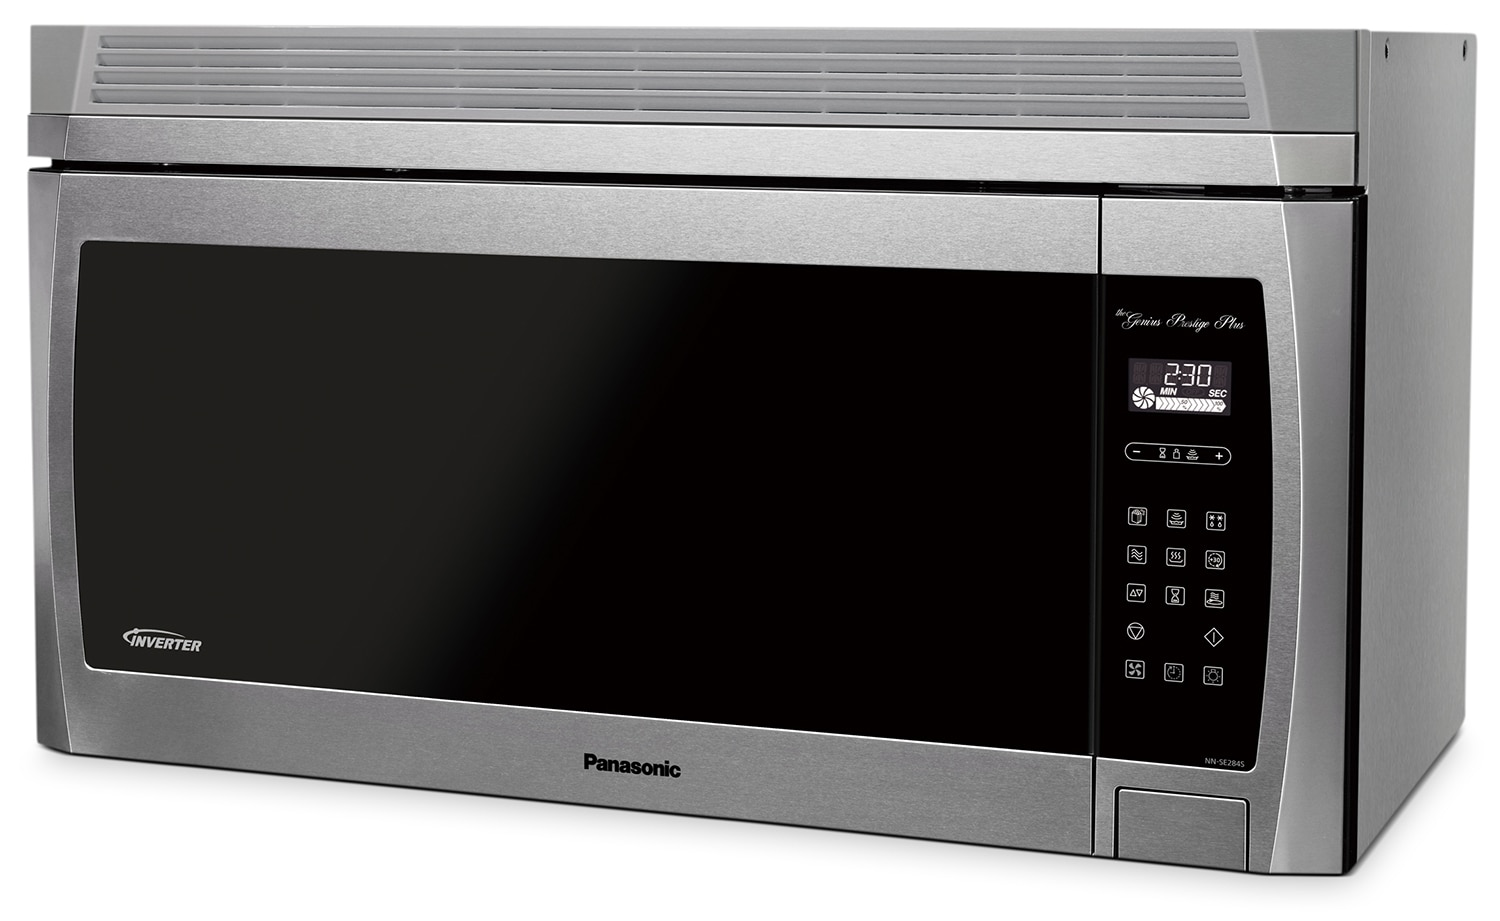 Panasonic 174 2 0 Cu Ft Genius 174 Prestige 174 Plus Over The